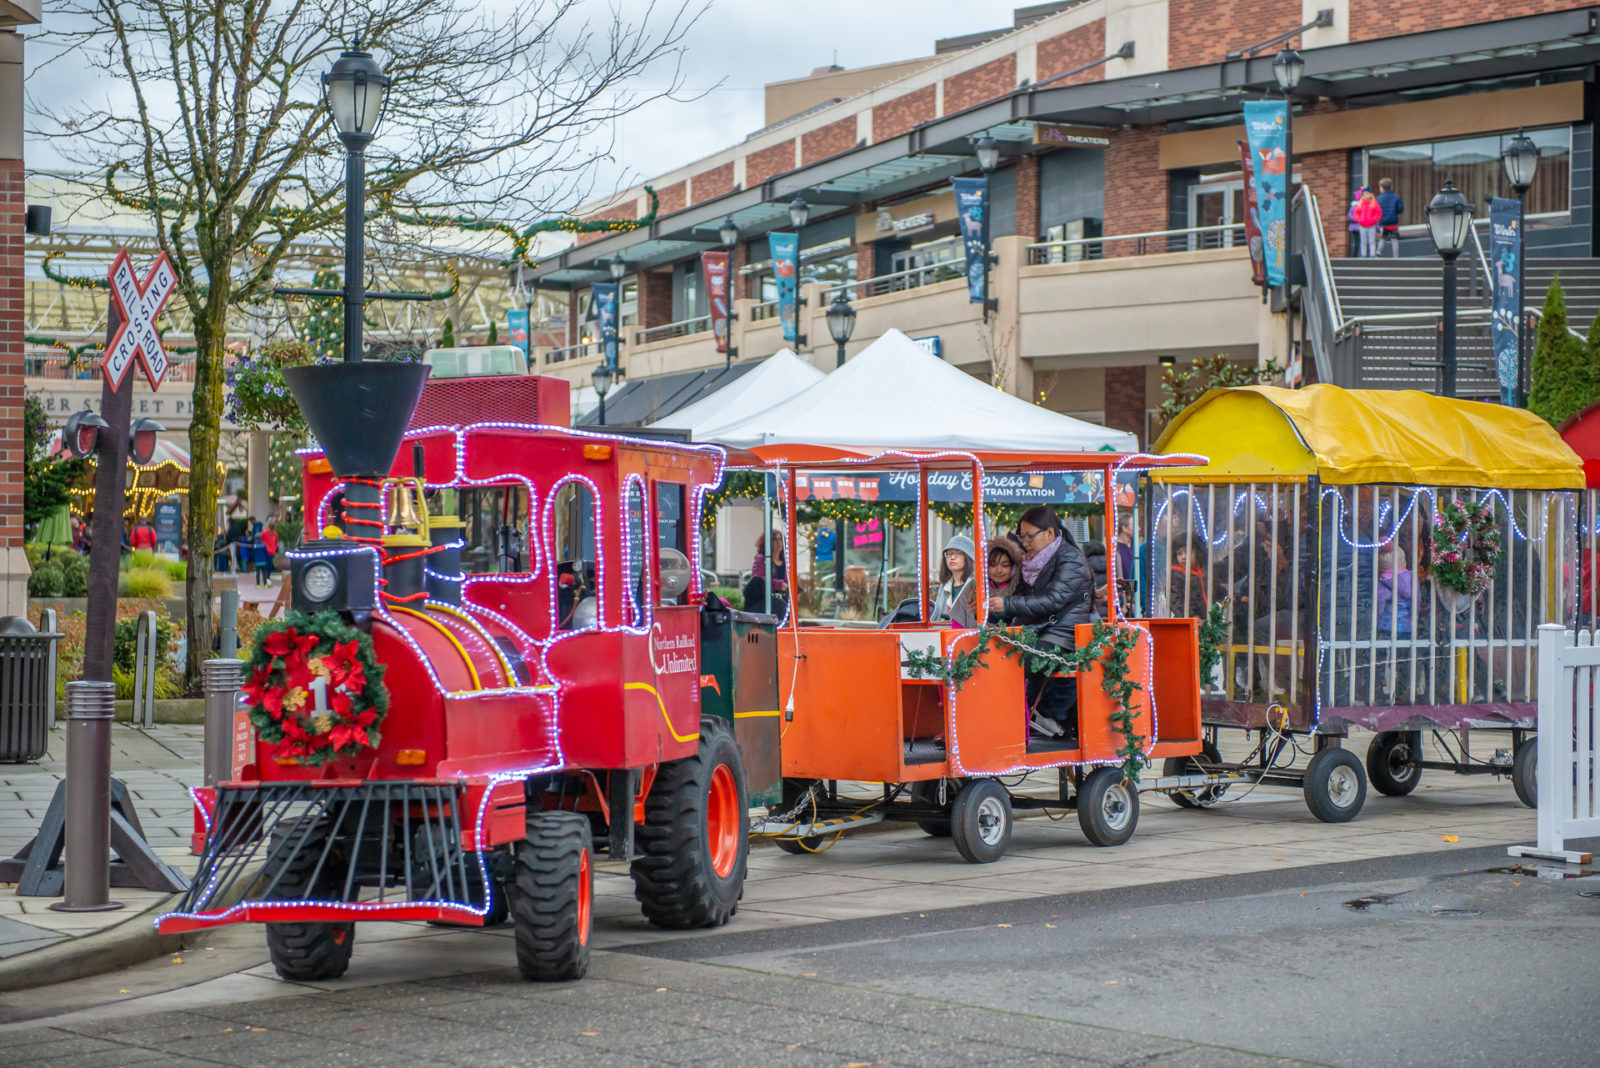 trackless train rental for carnivals or holiday events